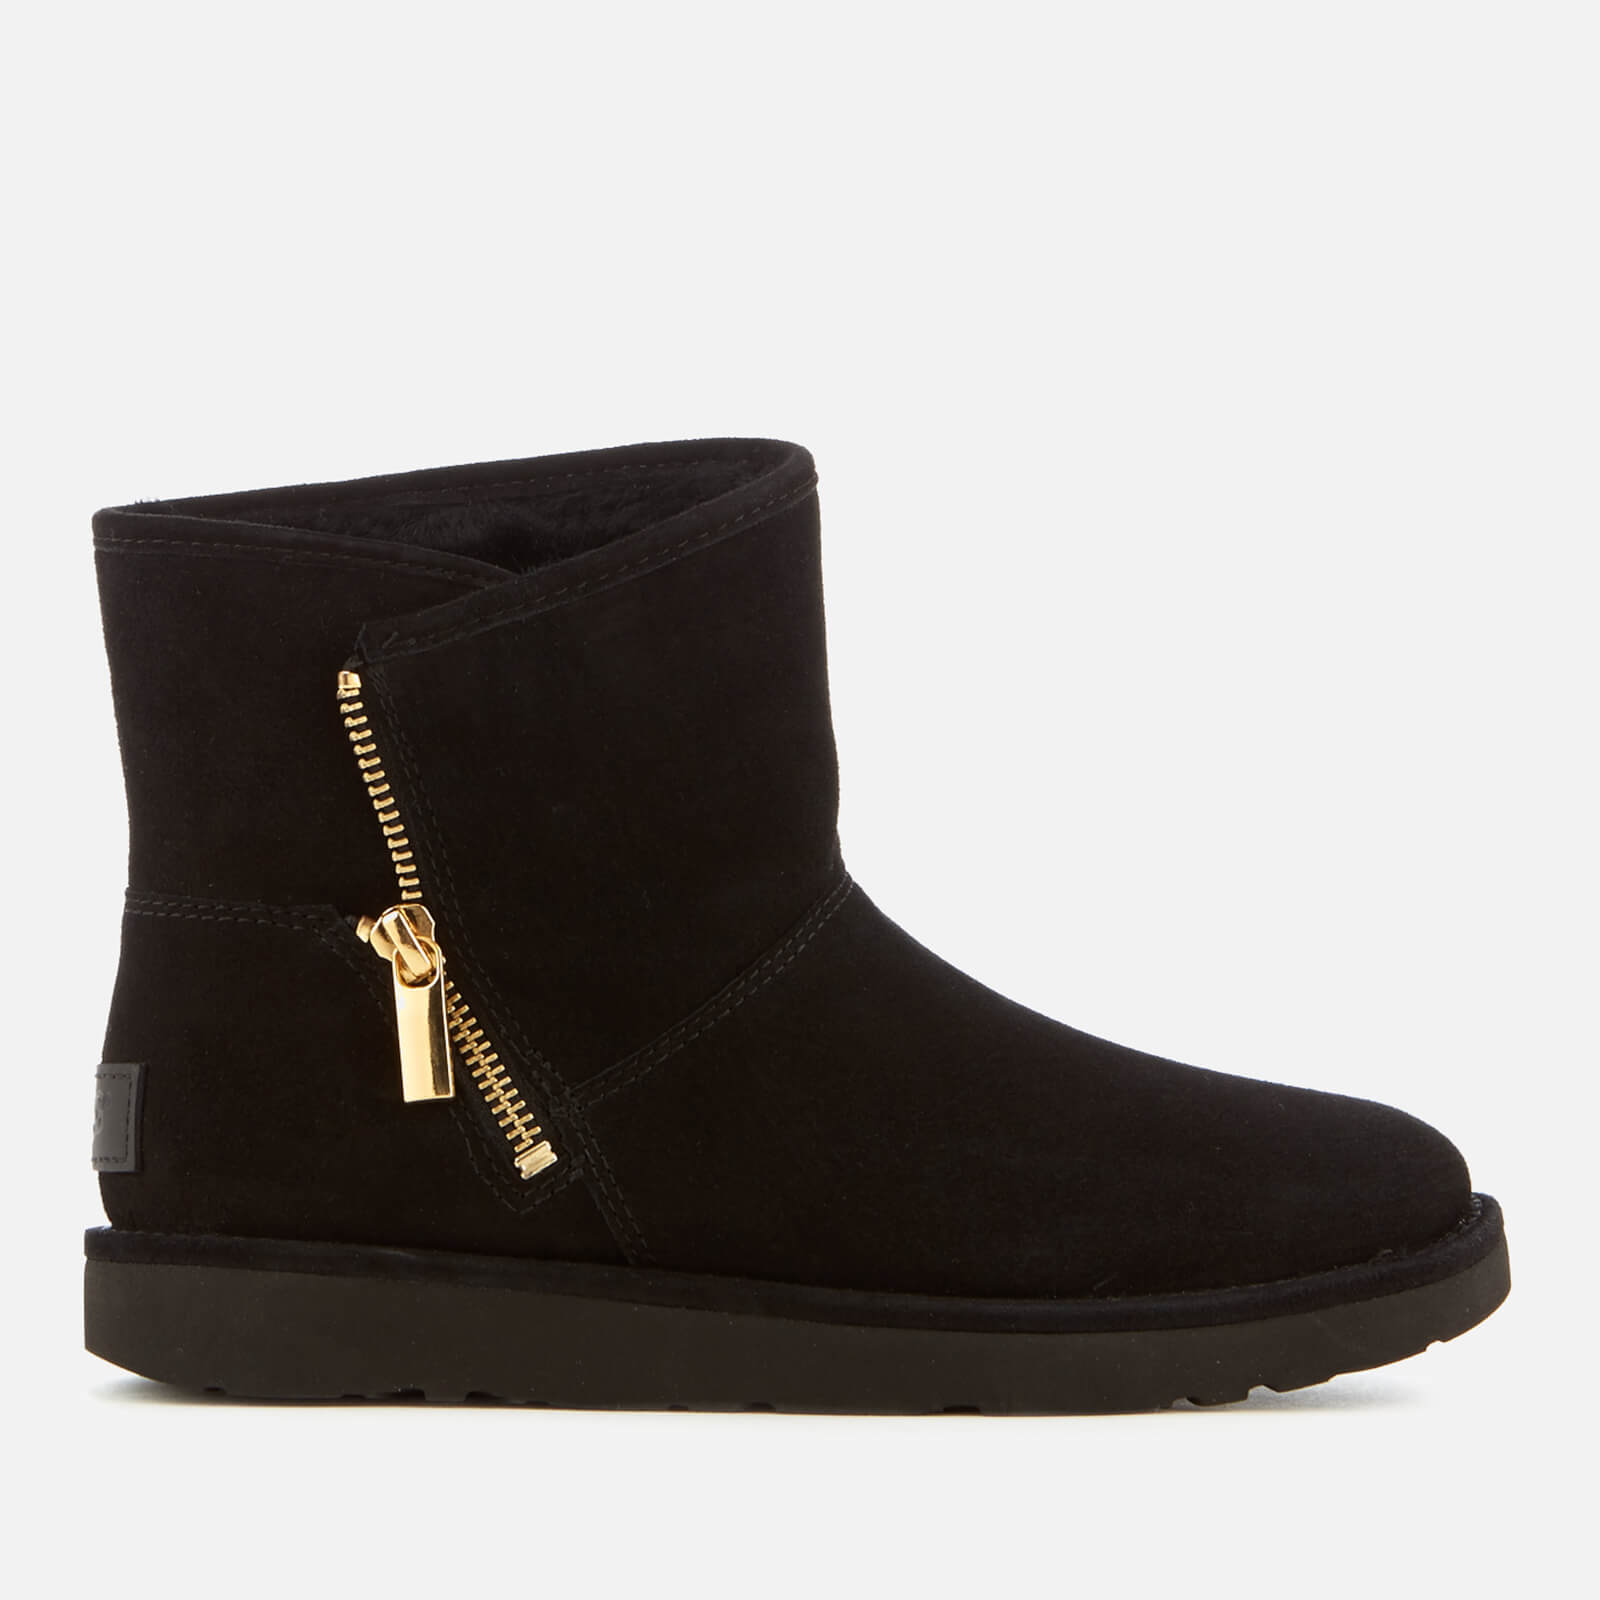 cd4bfb8b762a9 UGG Women's Kip Suede Zip Side Boots - Nero